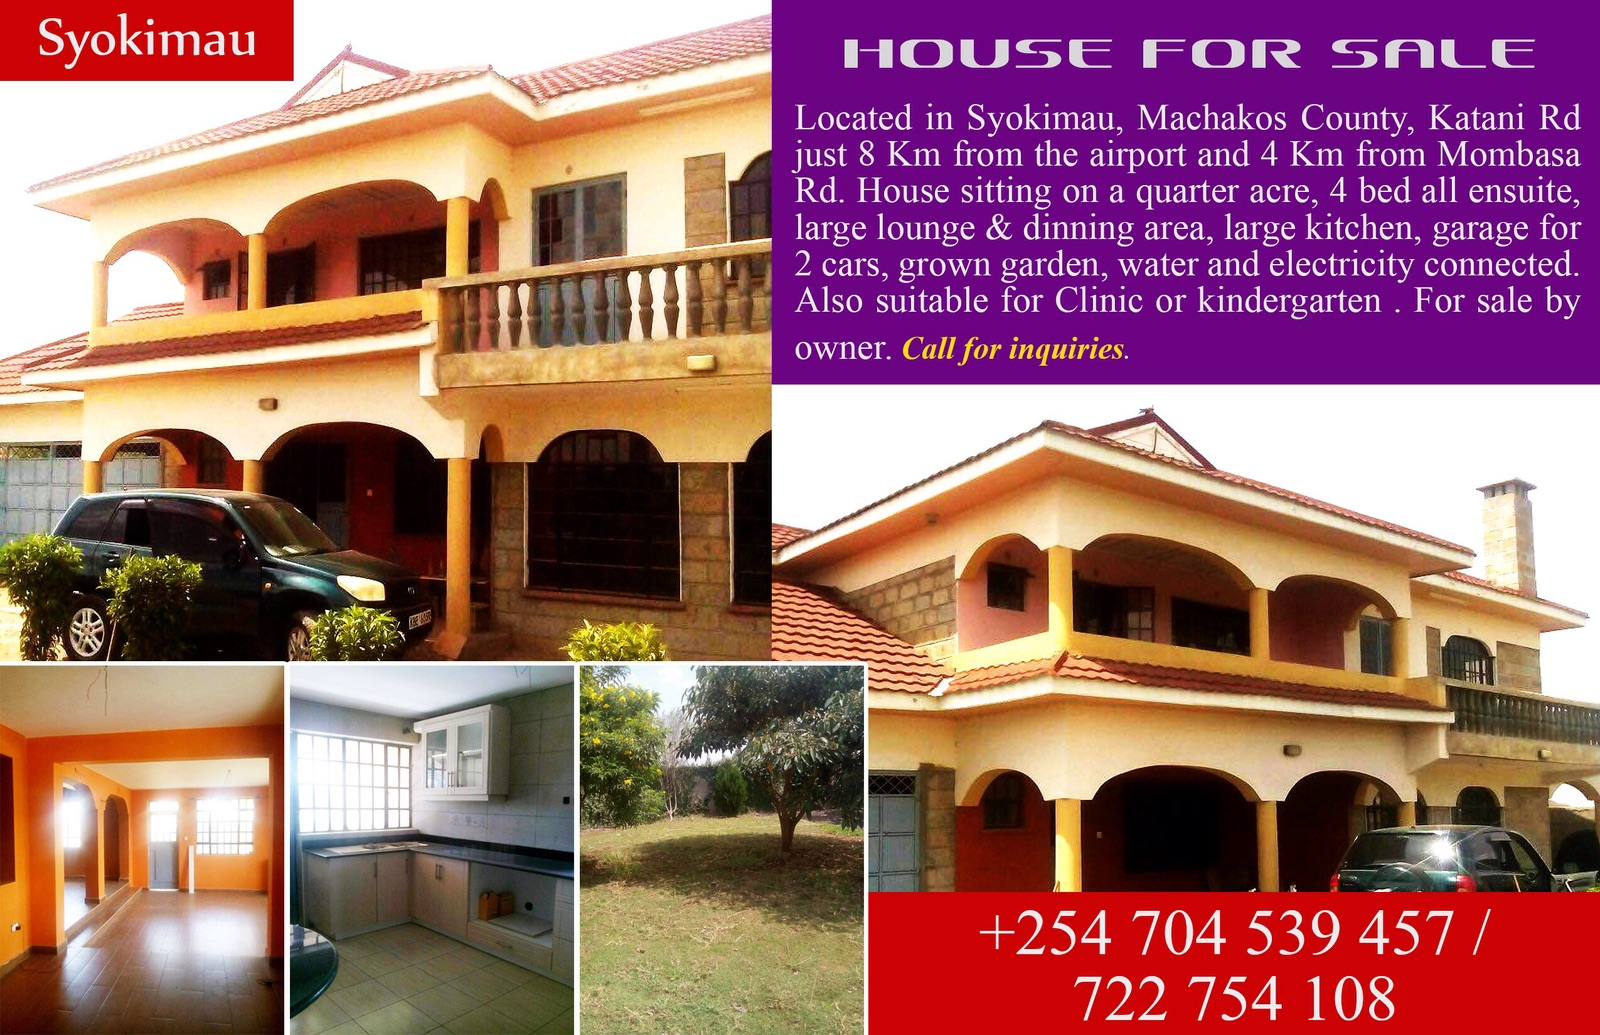 House for sale in syokimau